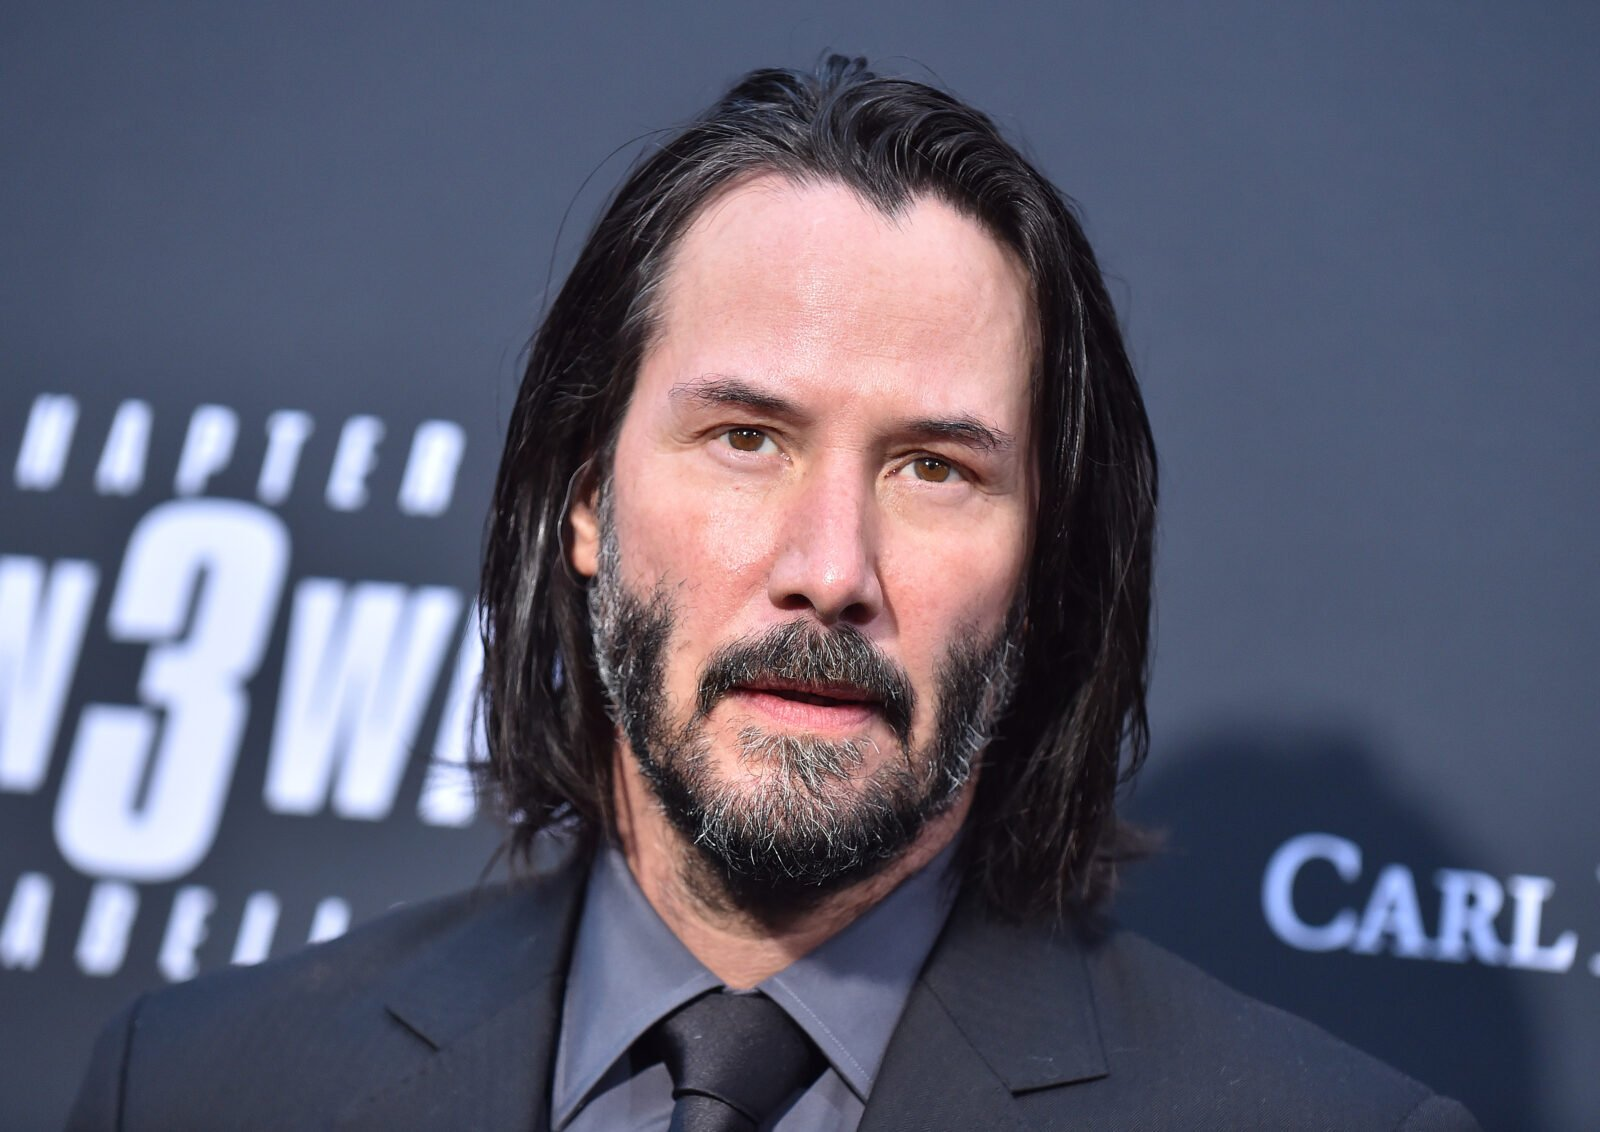 Will Keanu Reeves Play John Wick Again?